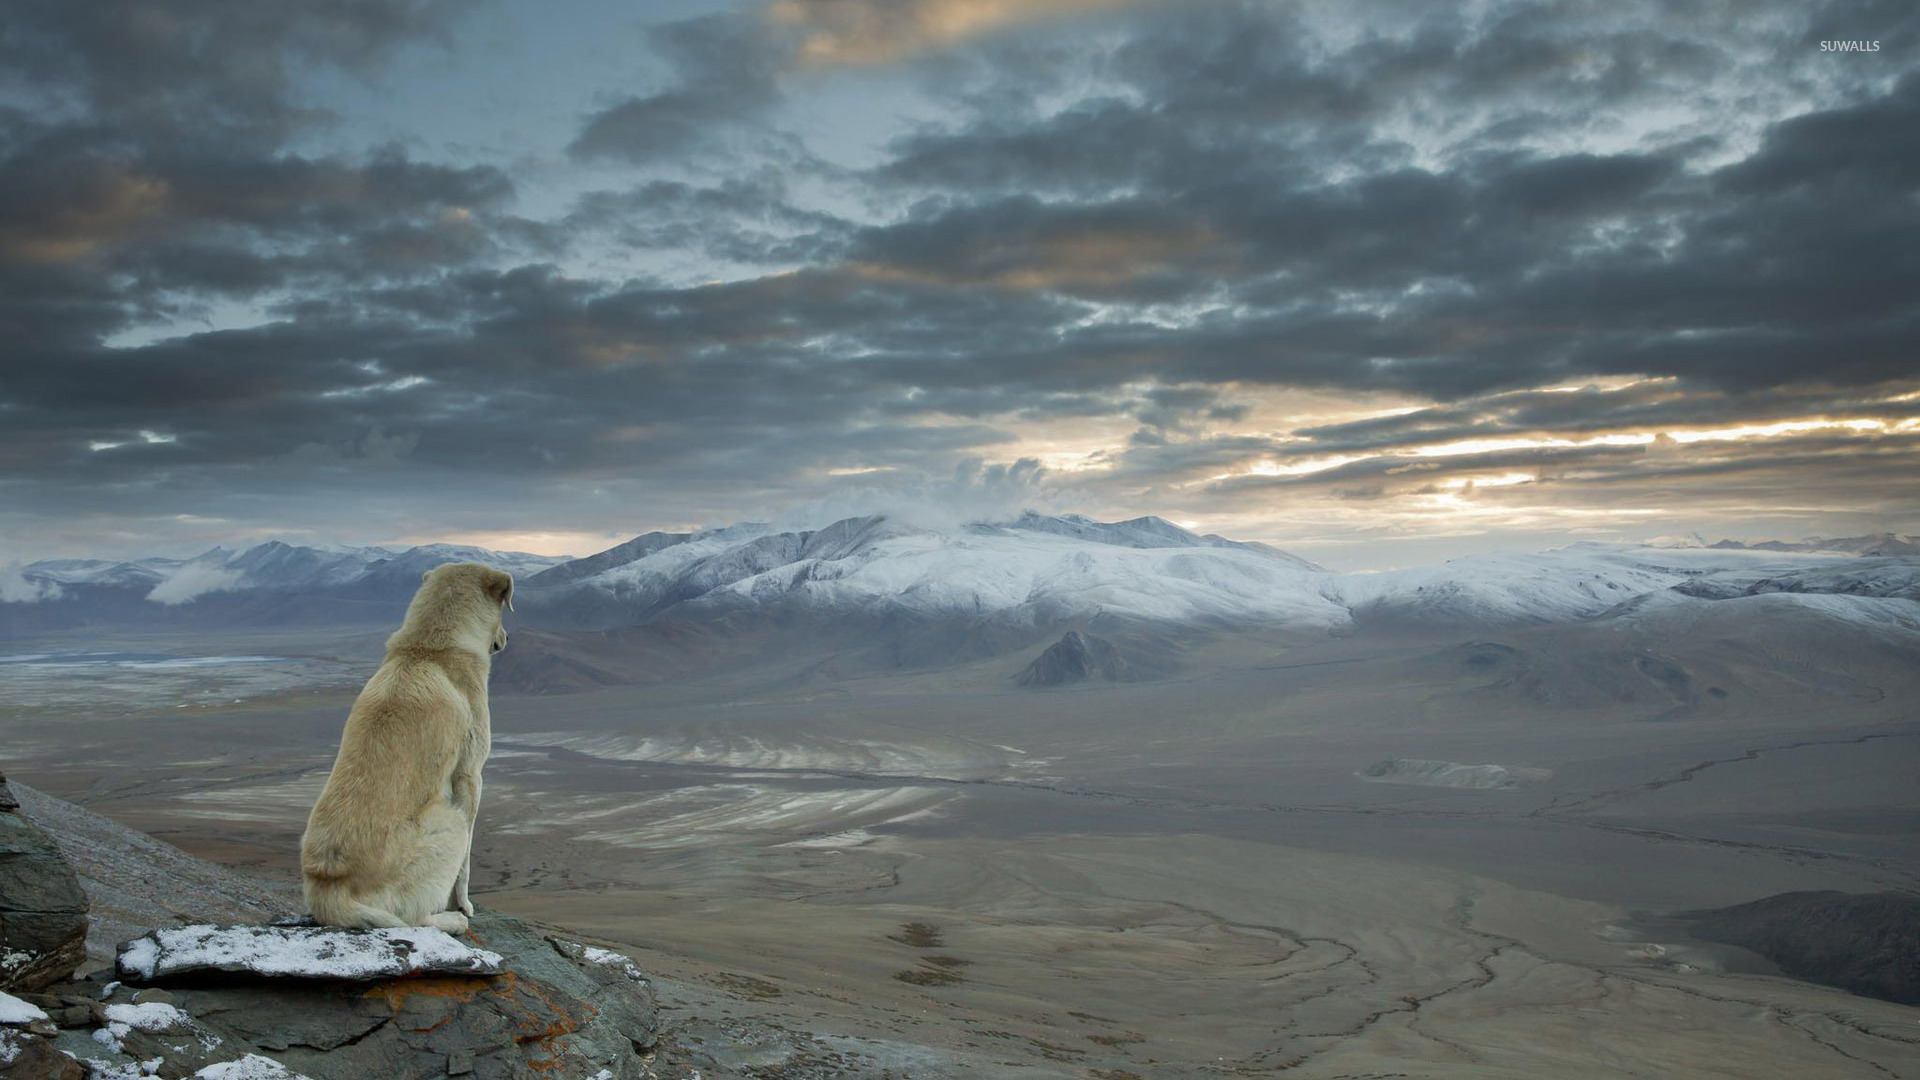 Fall Wallpaper Pc Dog Overlooking The Himalayas Wallpaper Nature